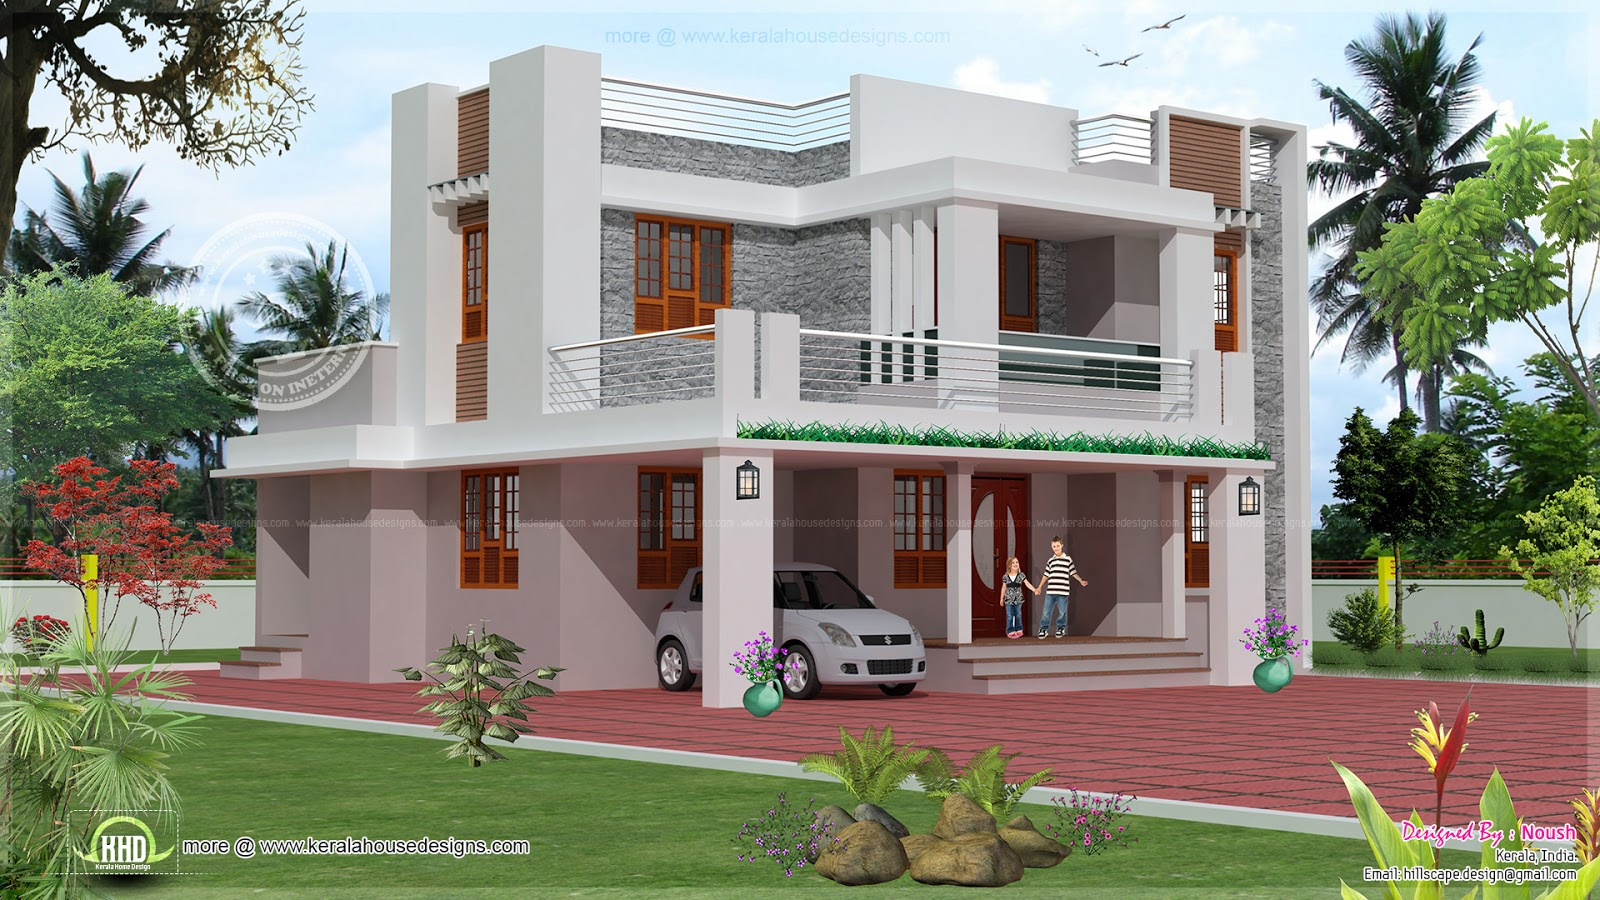 4 bedroom 2 story house exterior design kerala home